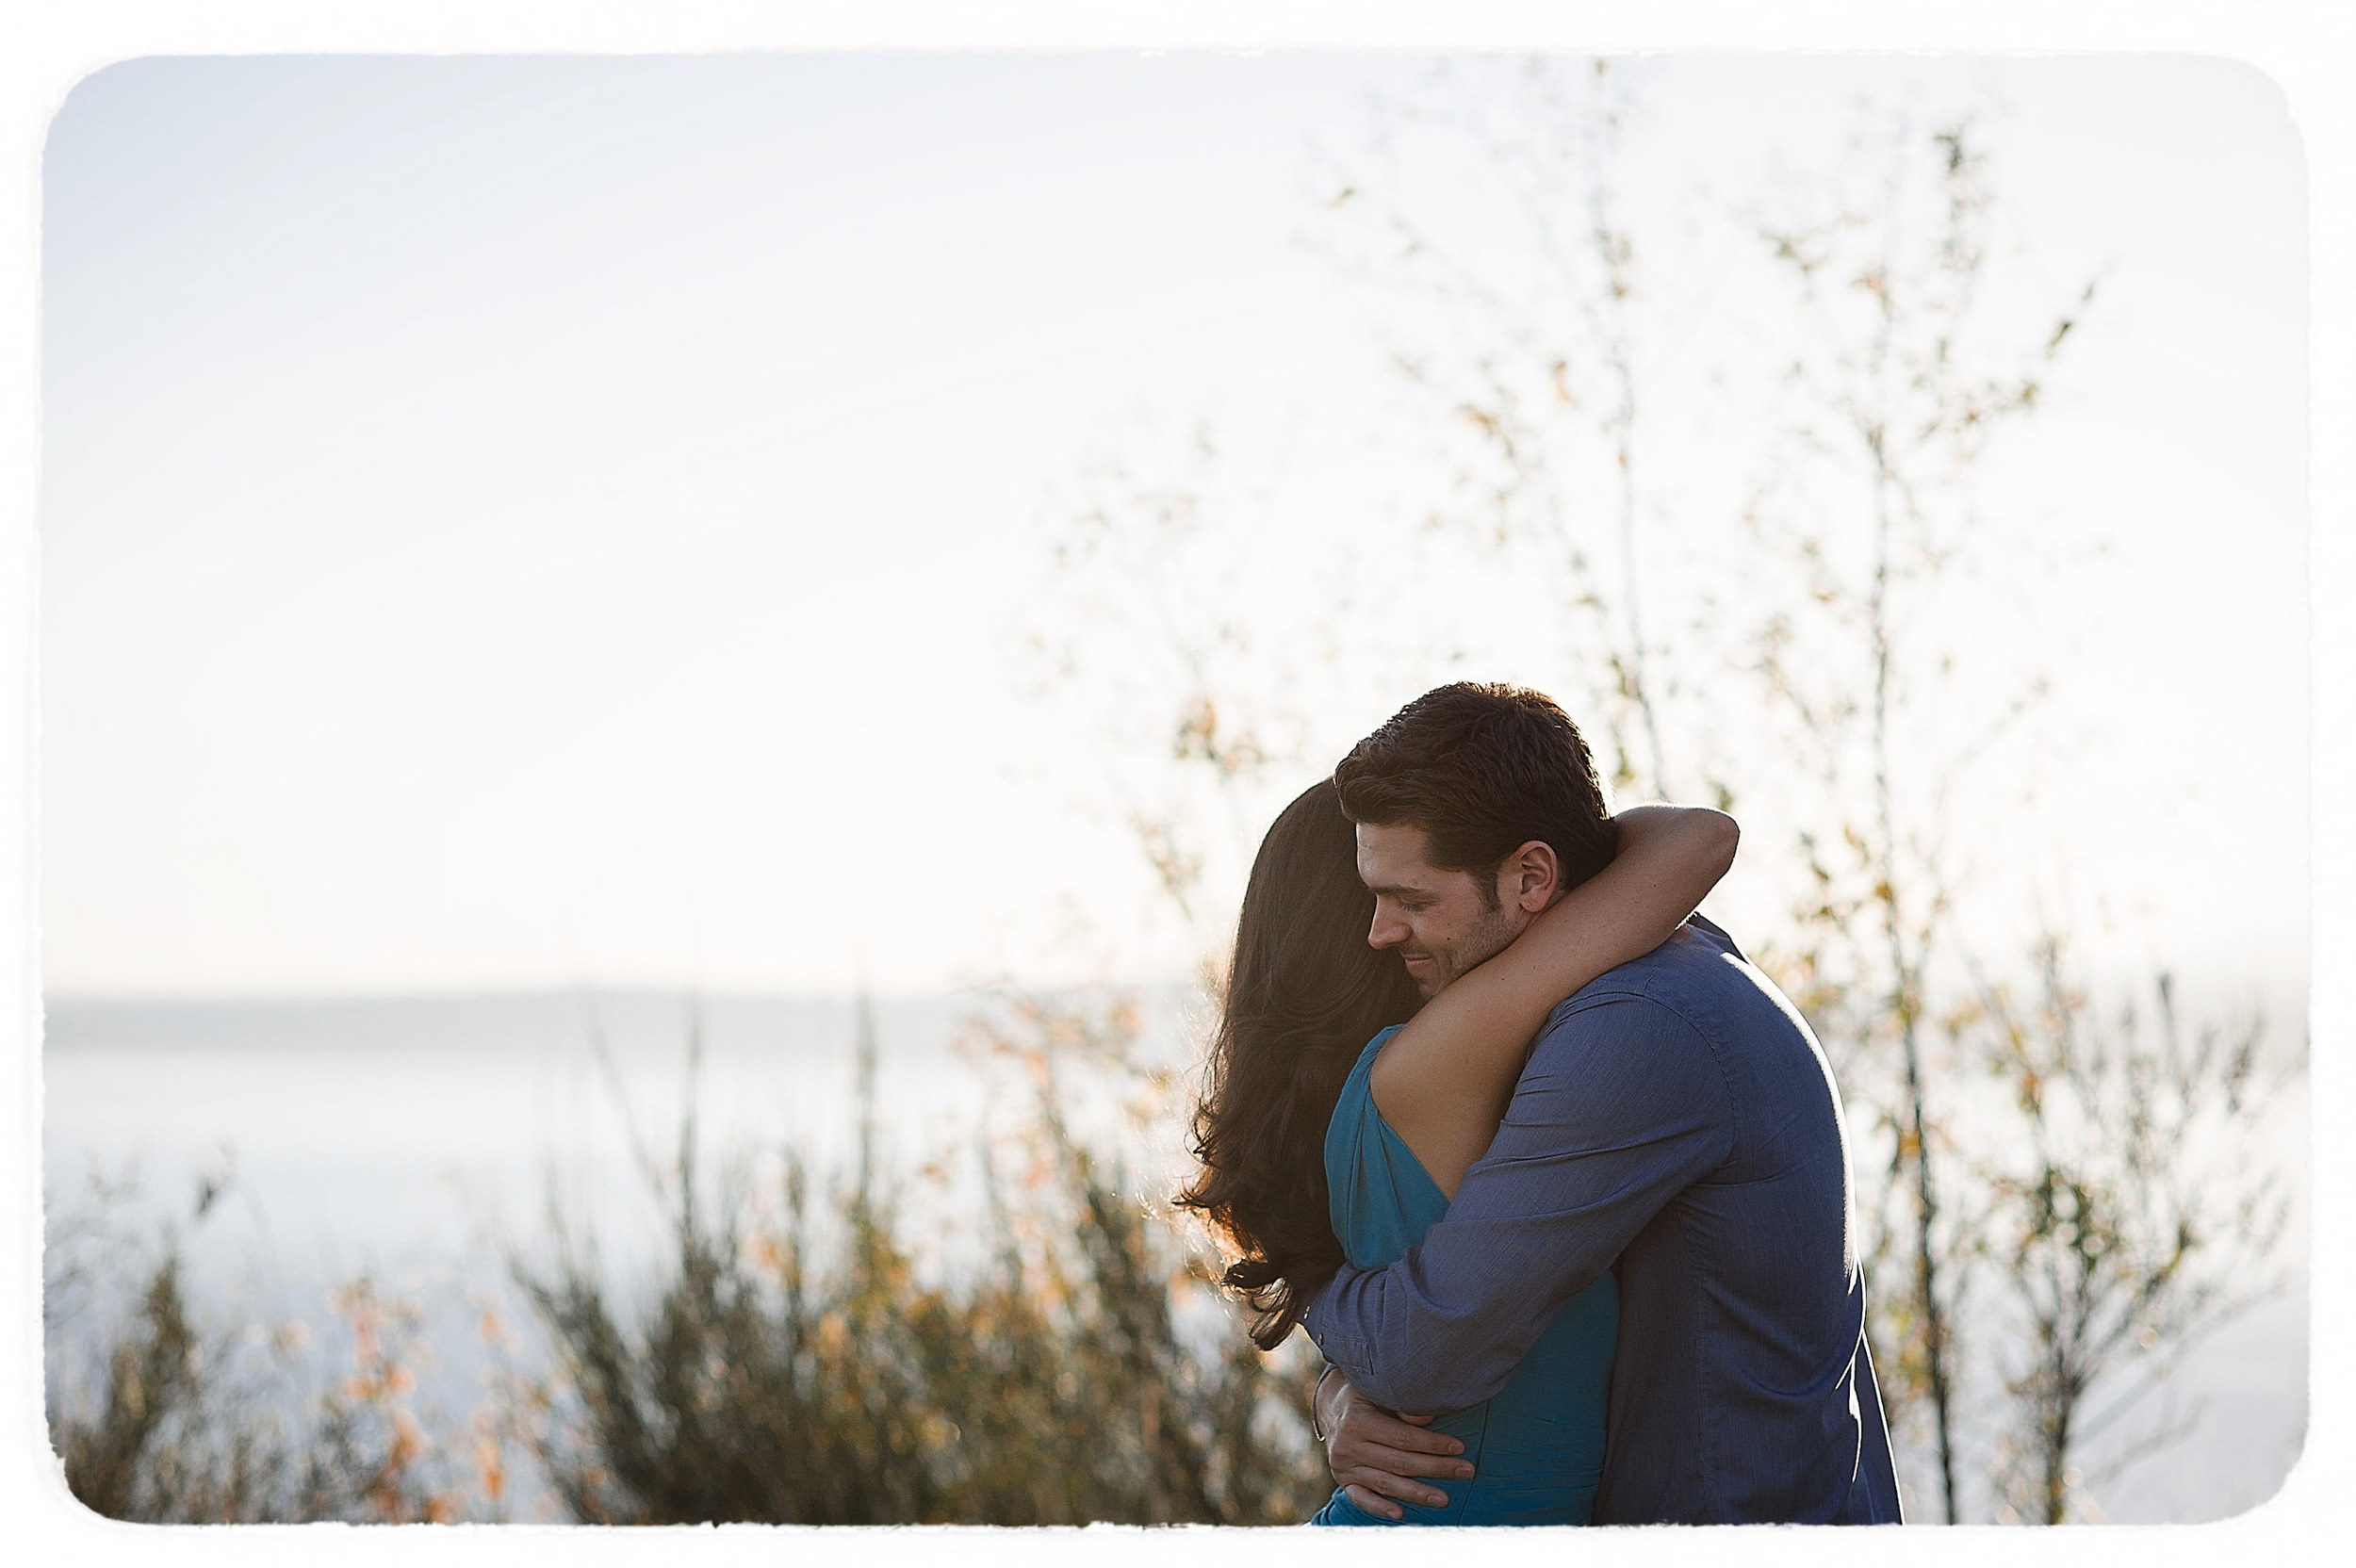 Kelly&Mike-EngagementSession-OriginalCollection-112Film.jpg